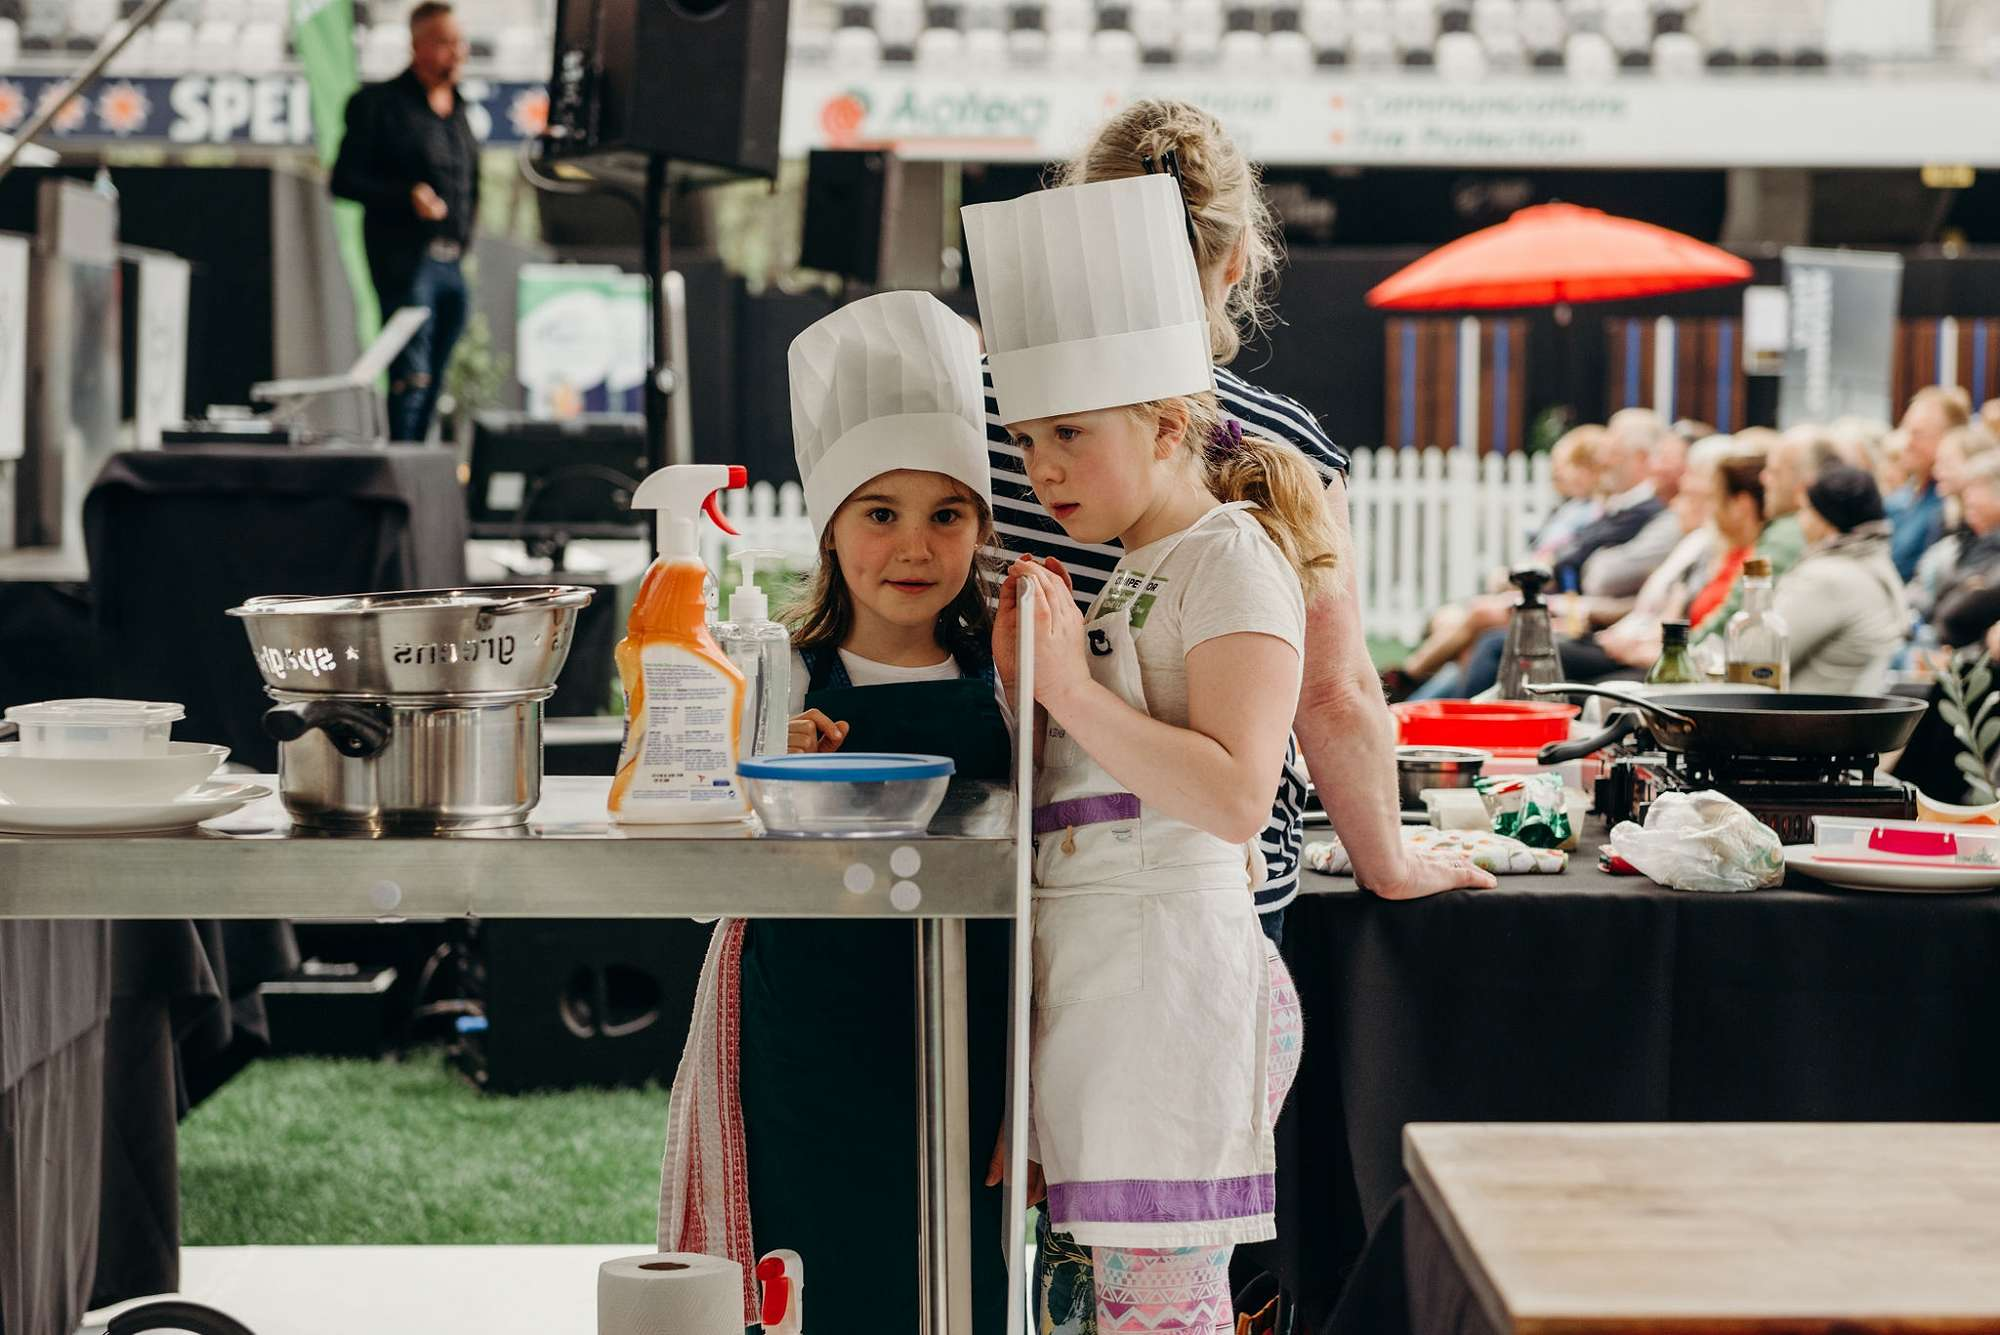 Competitors get ready for Kiwi Kids Can Cook